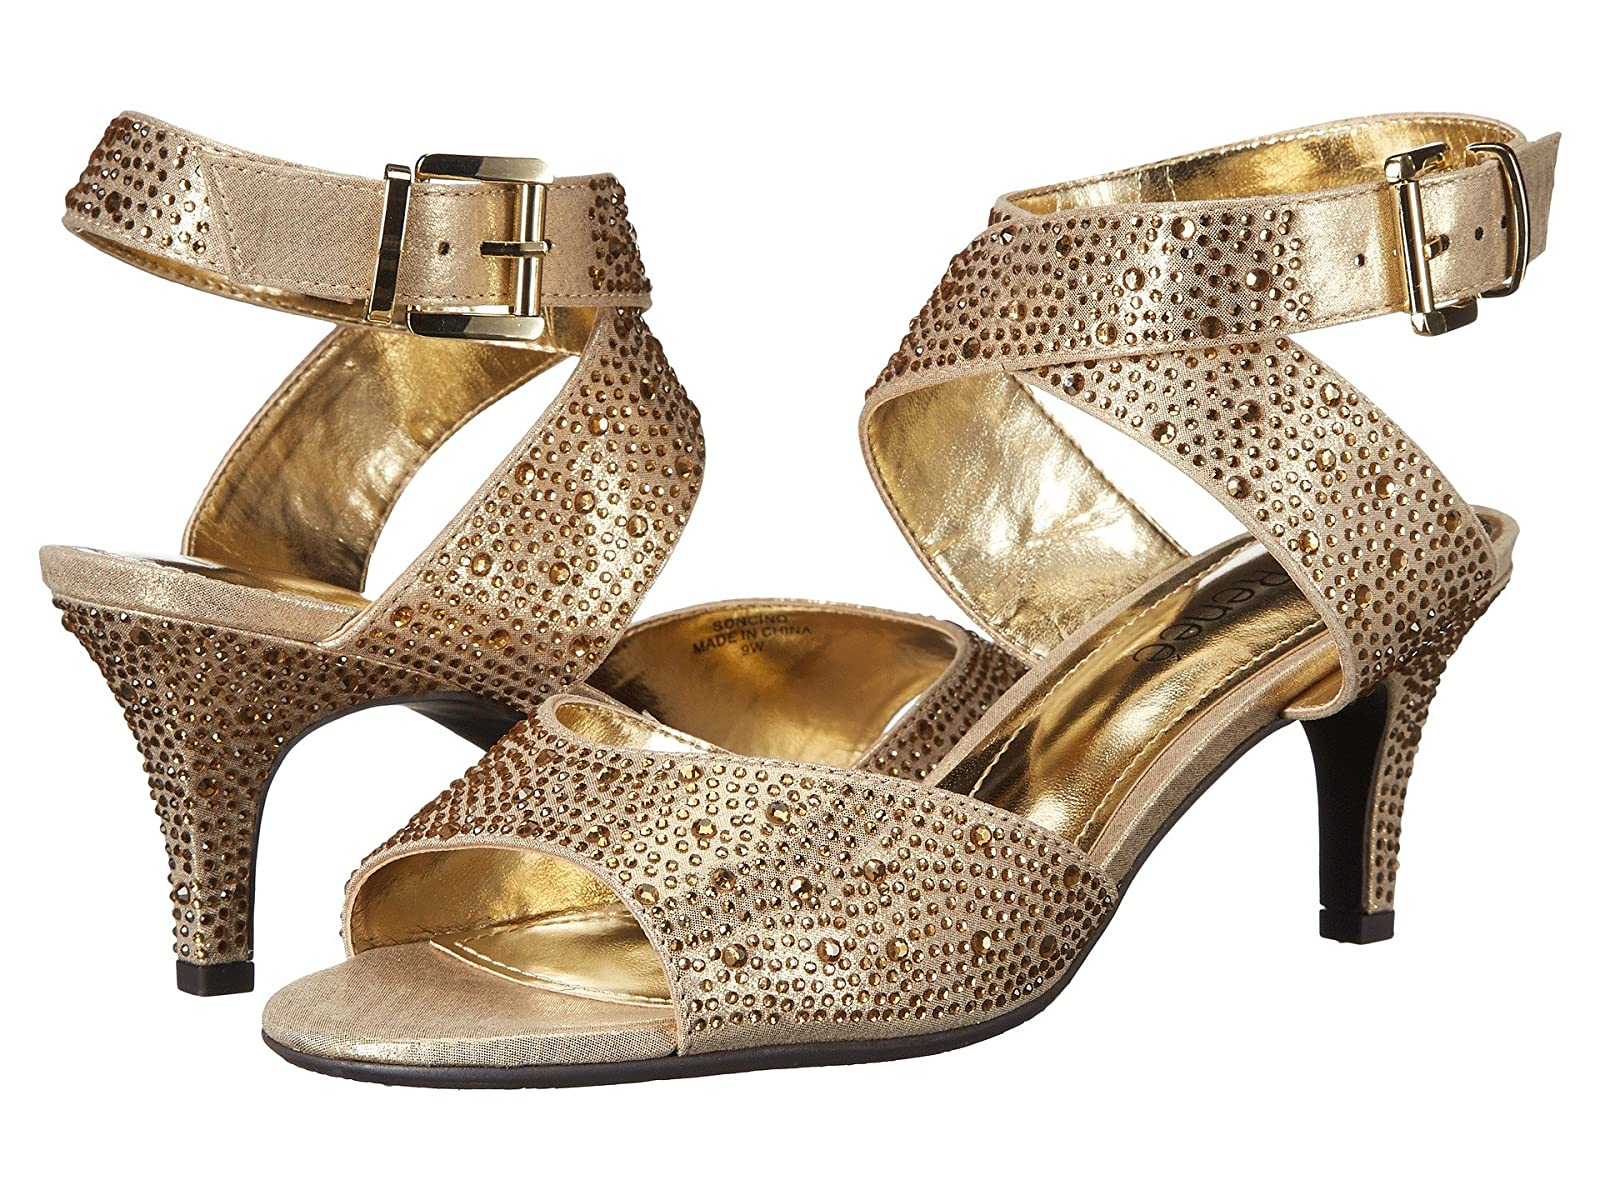 J. Renee SoncinoCheap and distinctive eye-catching shoes